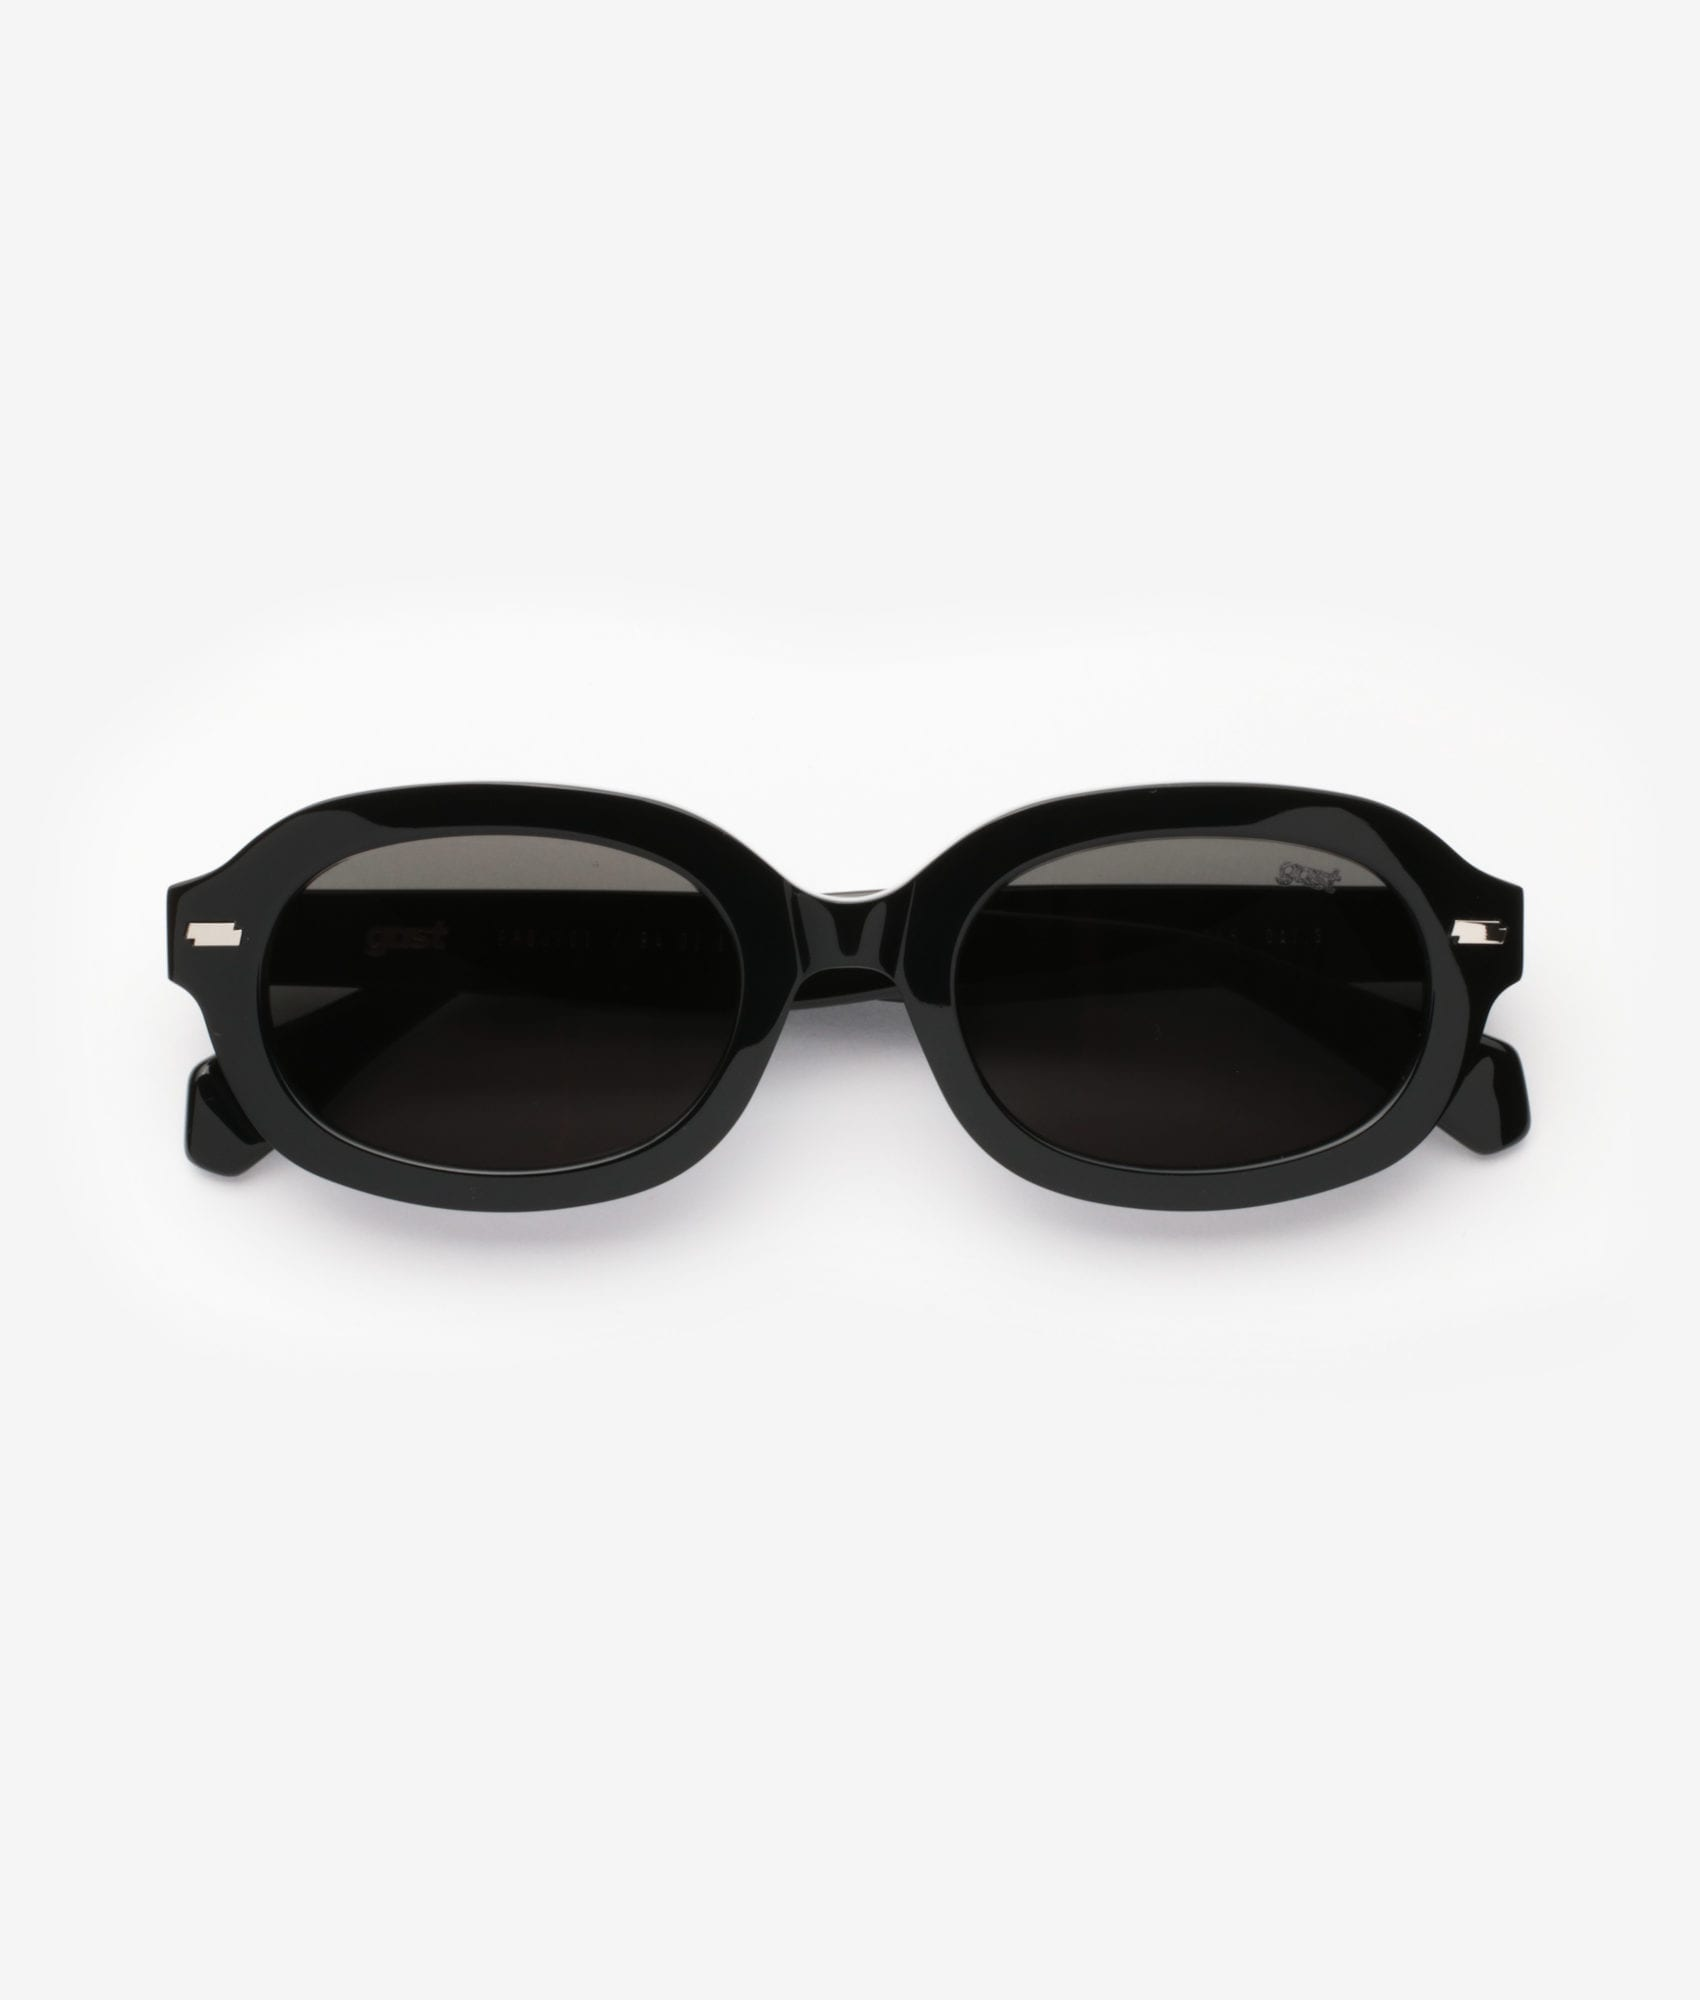 NSFK Black Gast Sunglasses